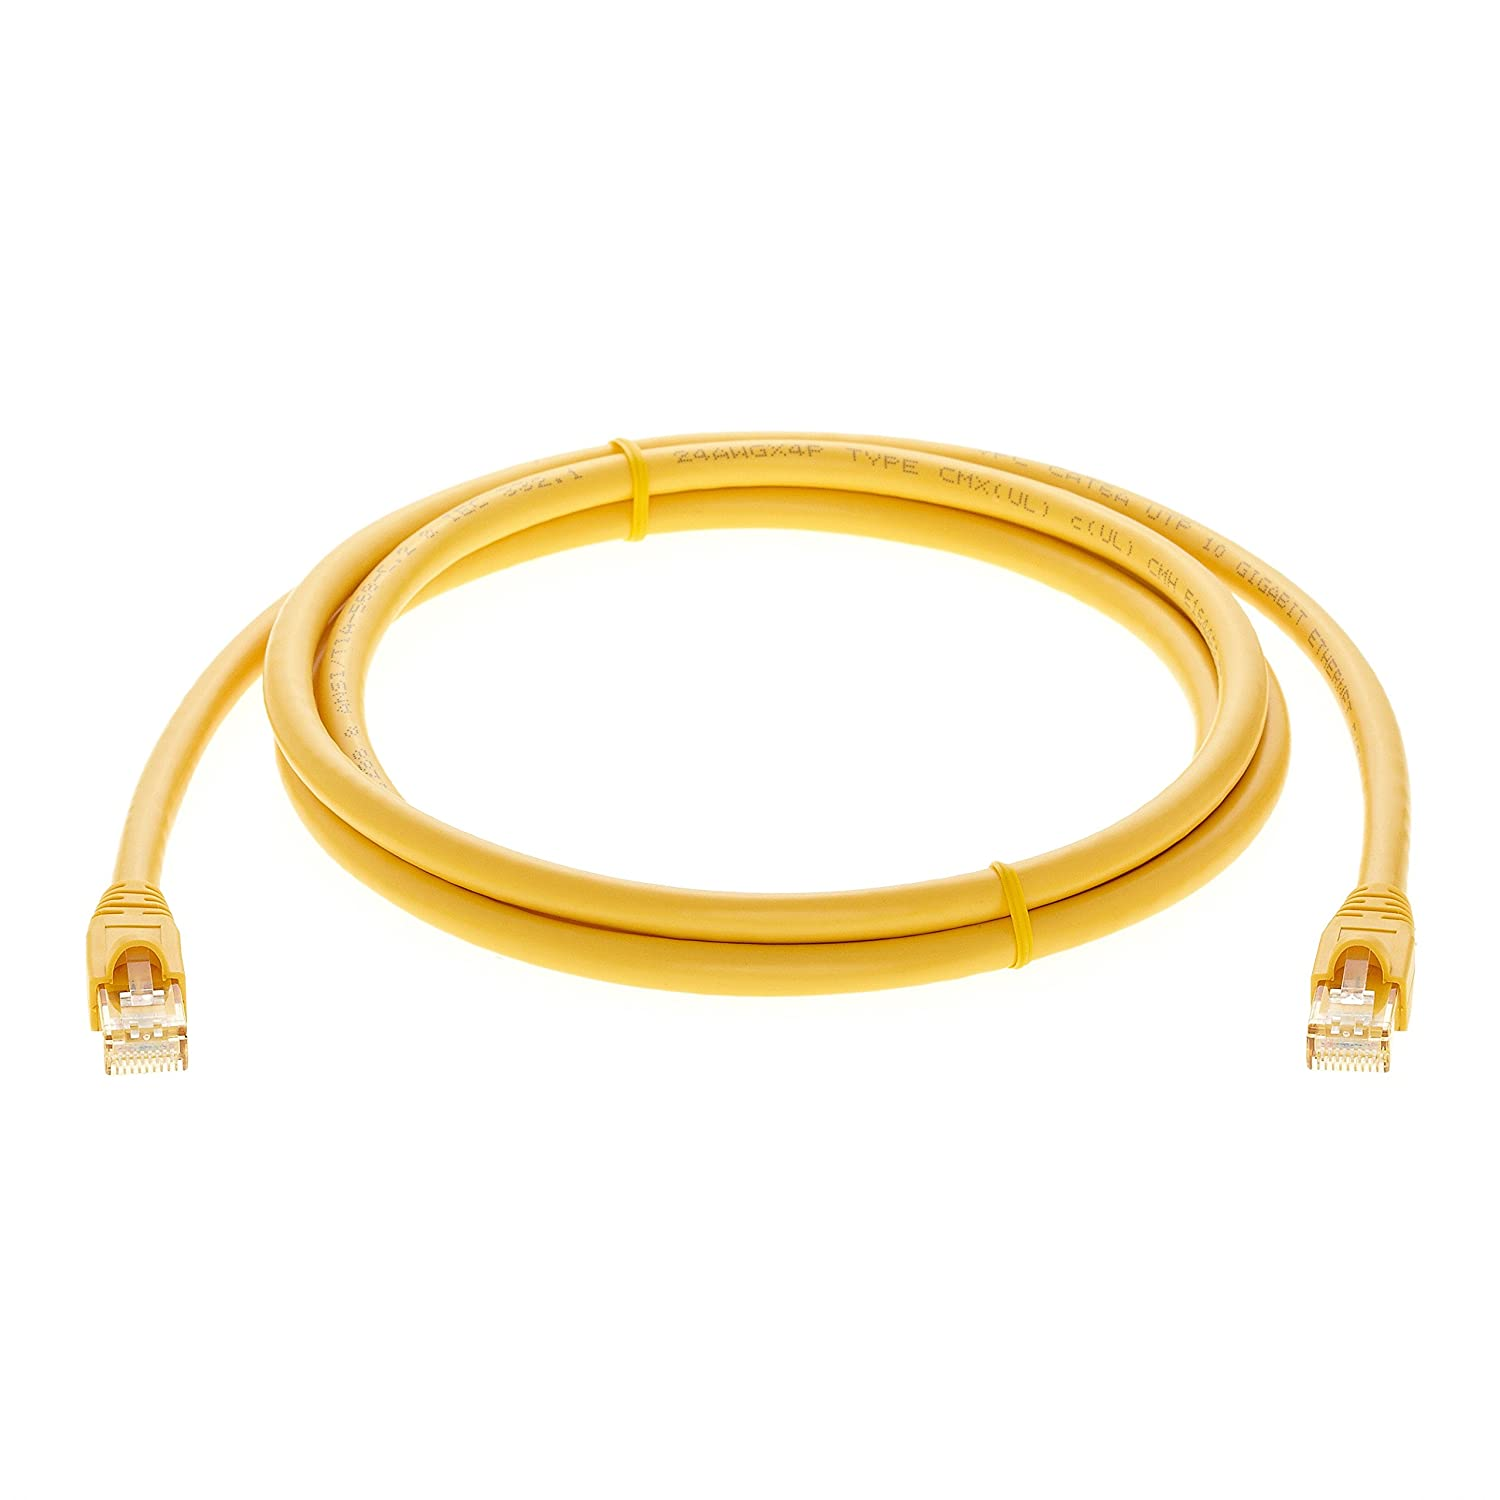 Professional Series 550MHZ 4936 InstallerParts Ethernet Cable CAT6A Cable UTP Booted 7 FT Yellow 10Gigabit//Sec Network//High Speed Internet Cable